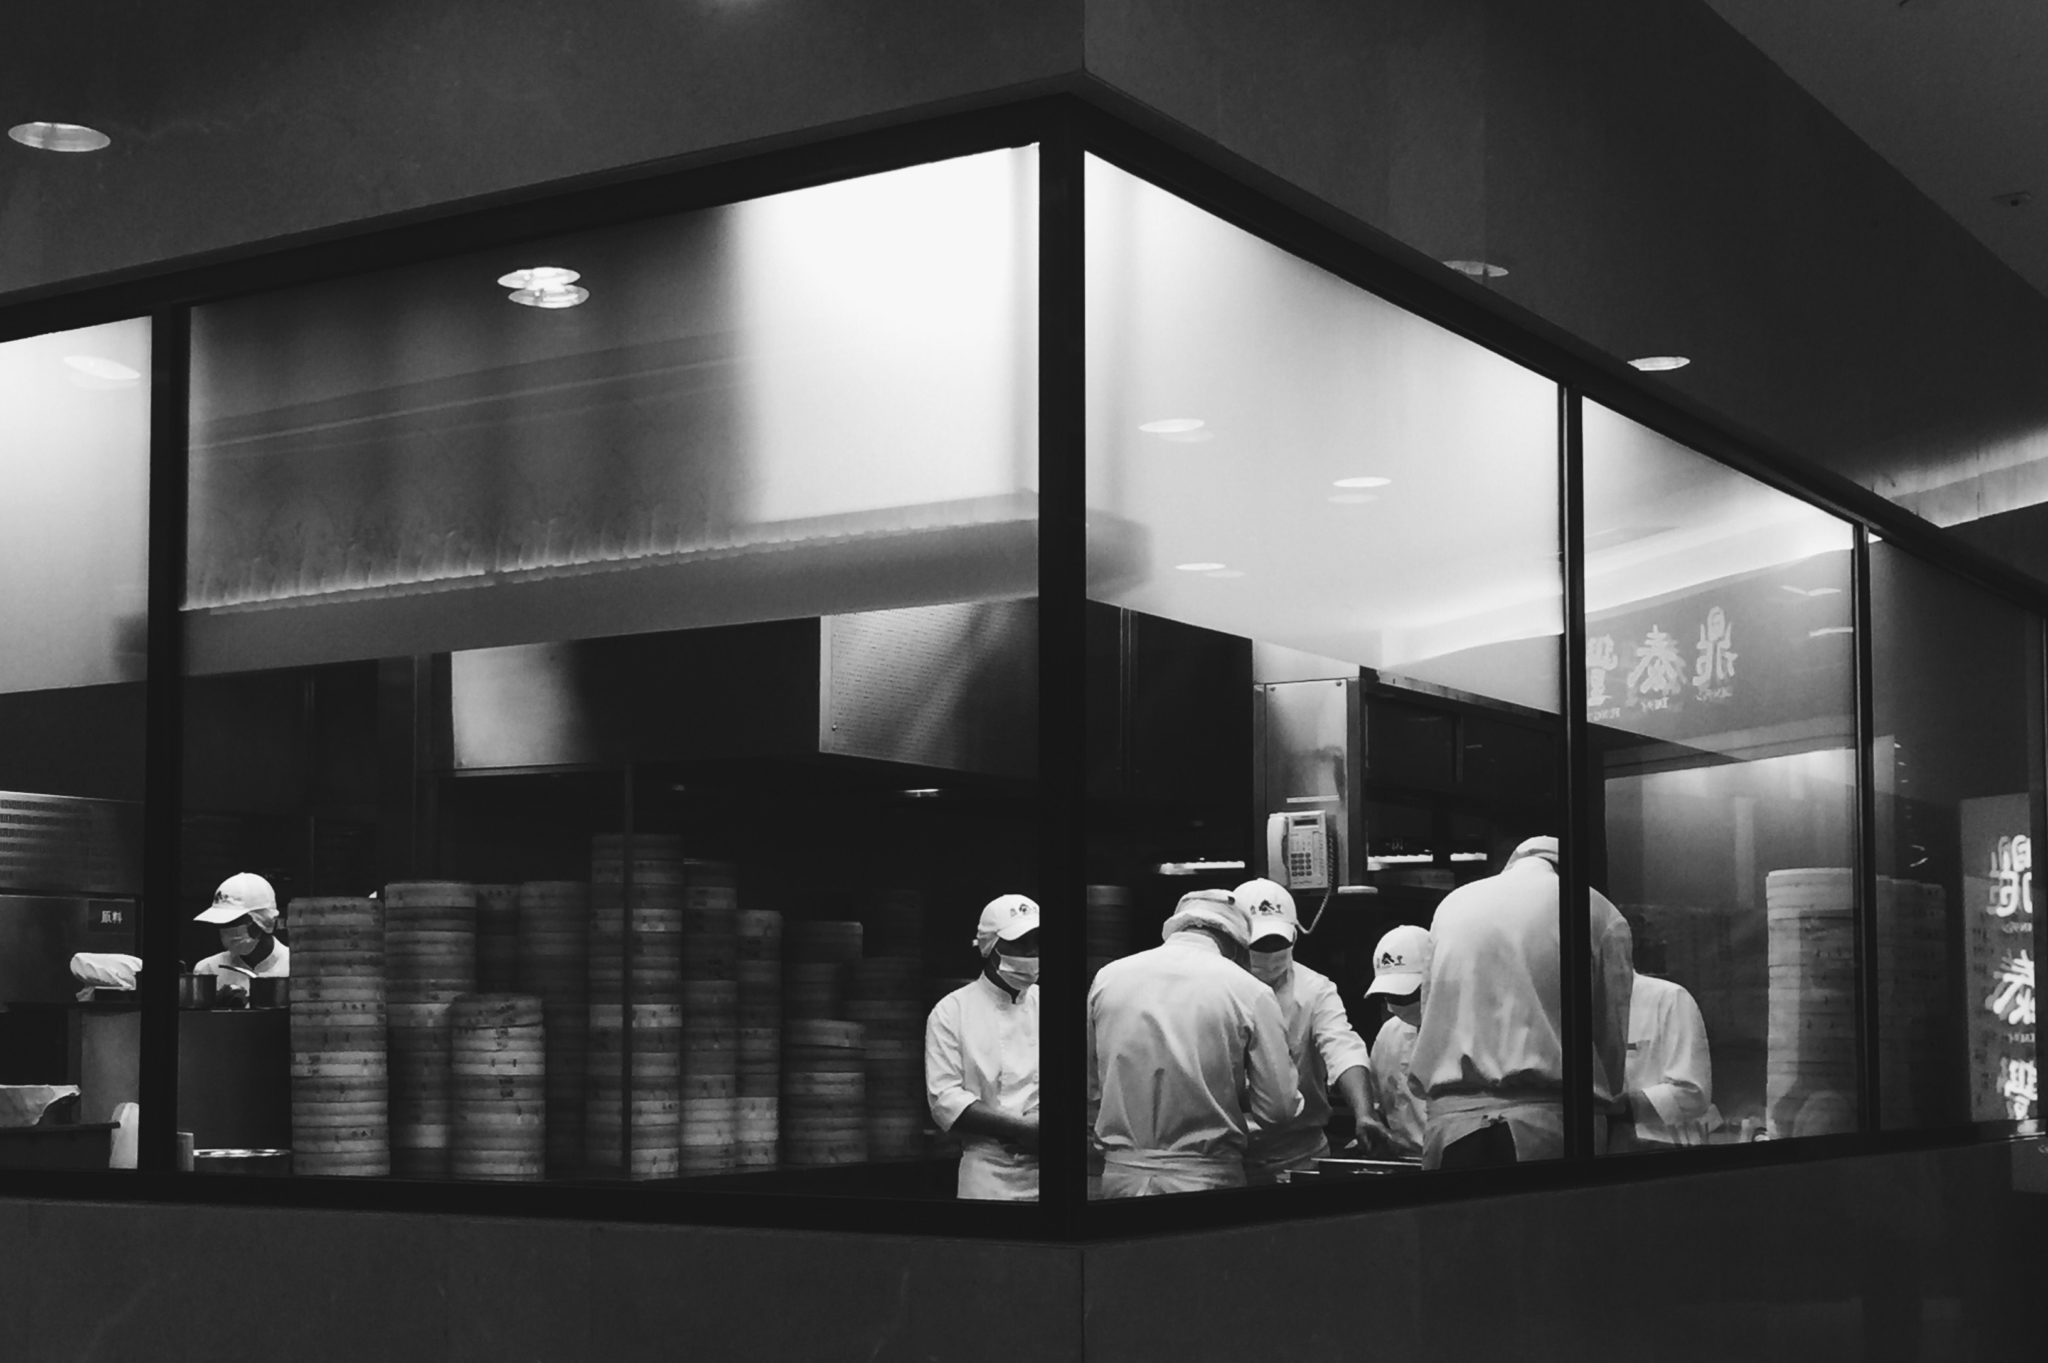 Going to a culinary school can build a strong skill foundation—but with serious risks